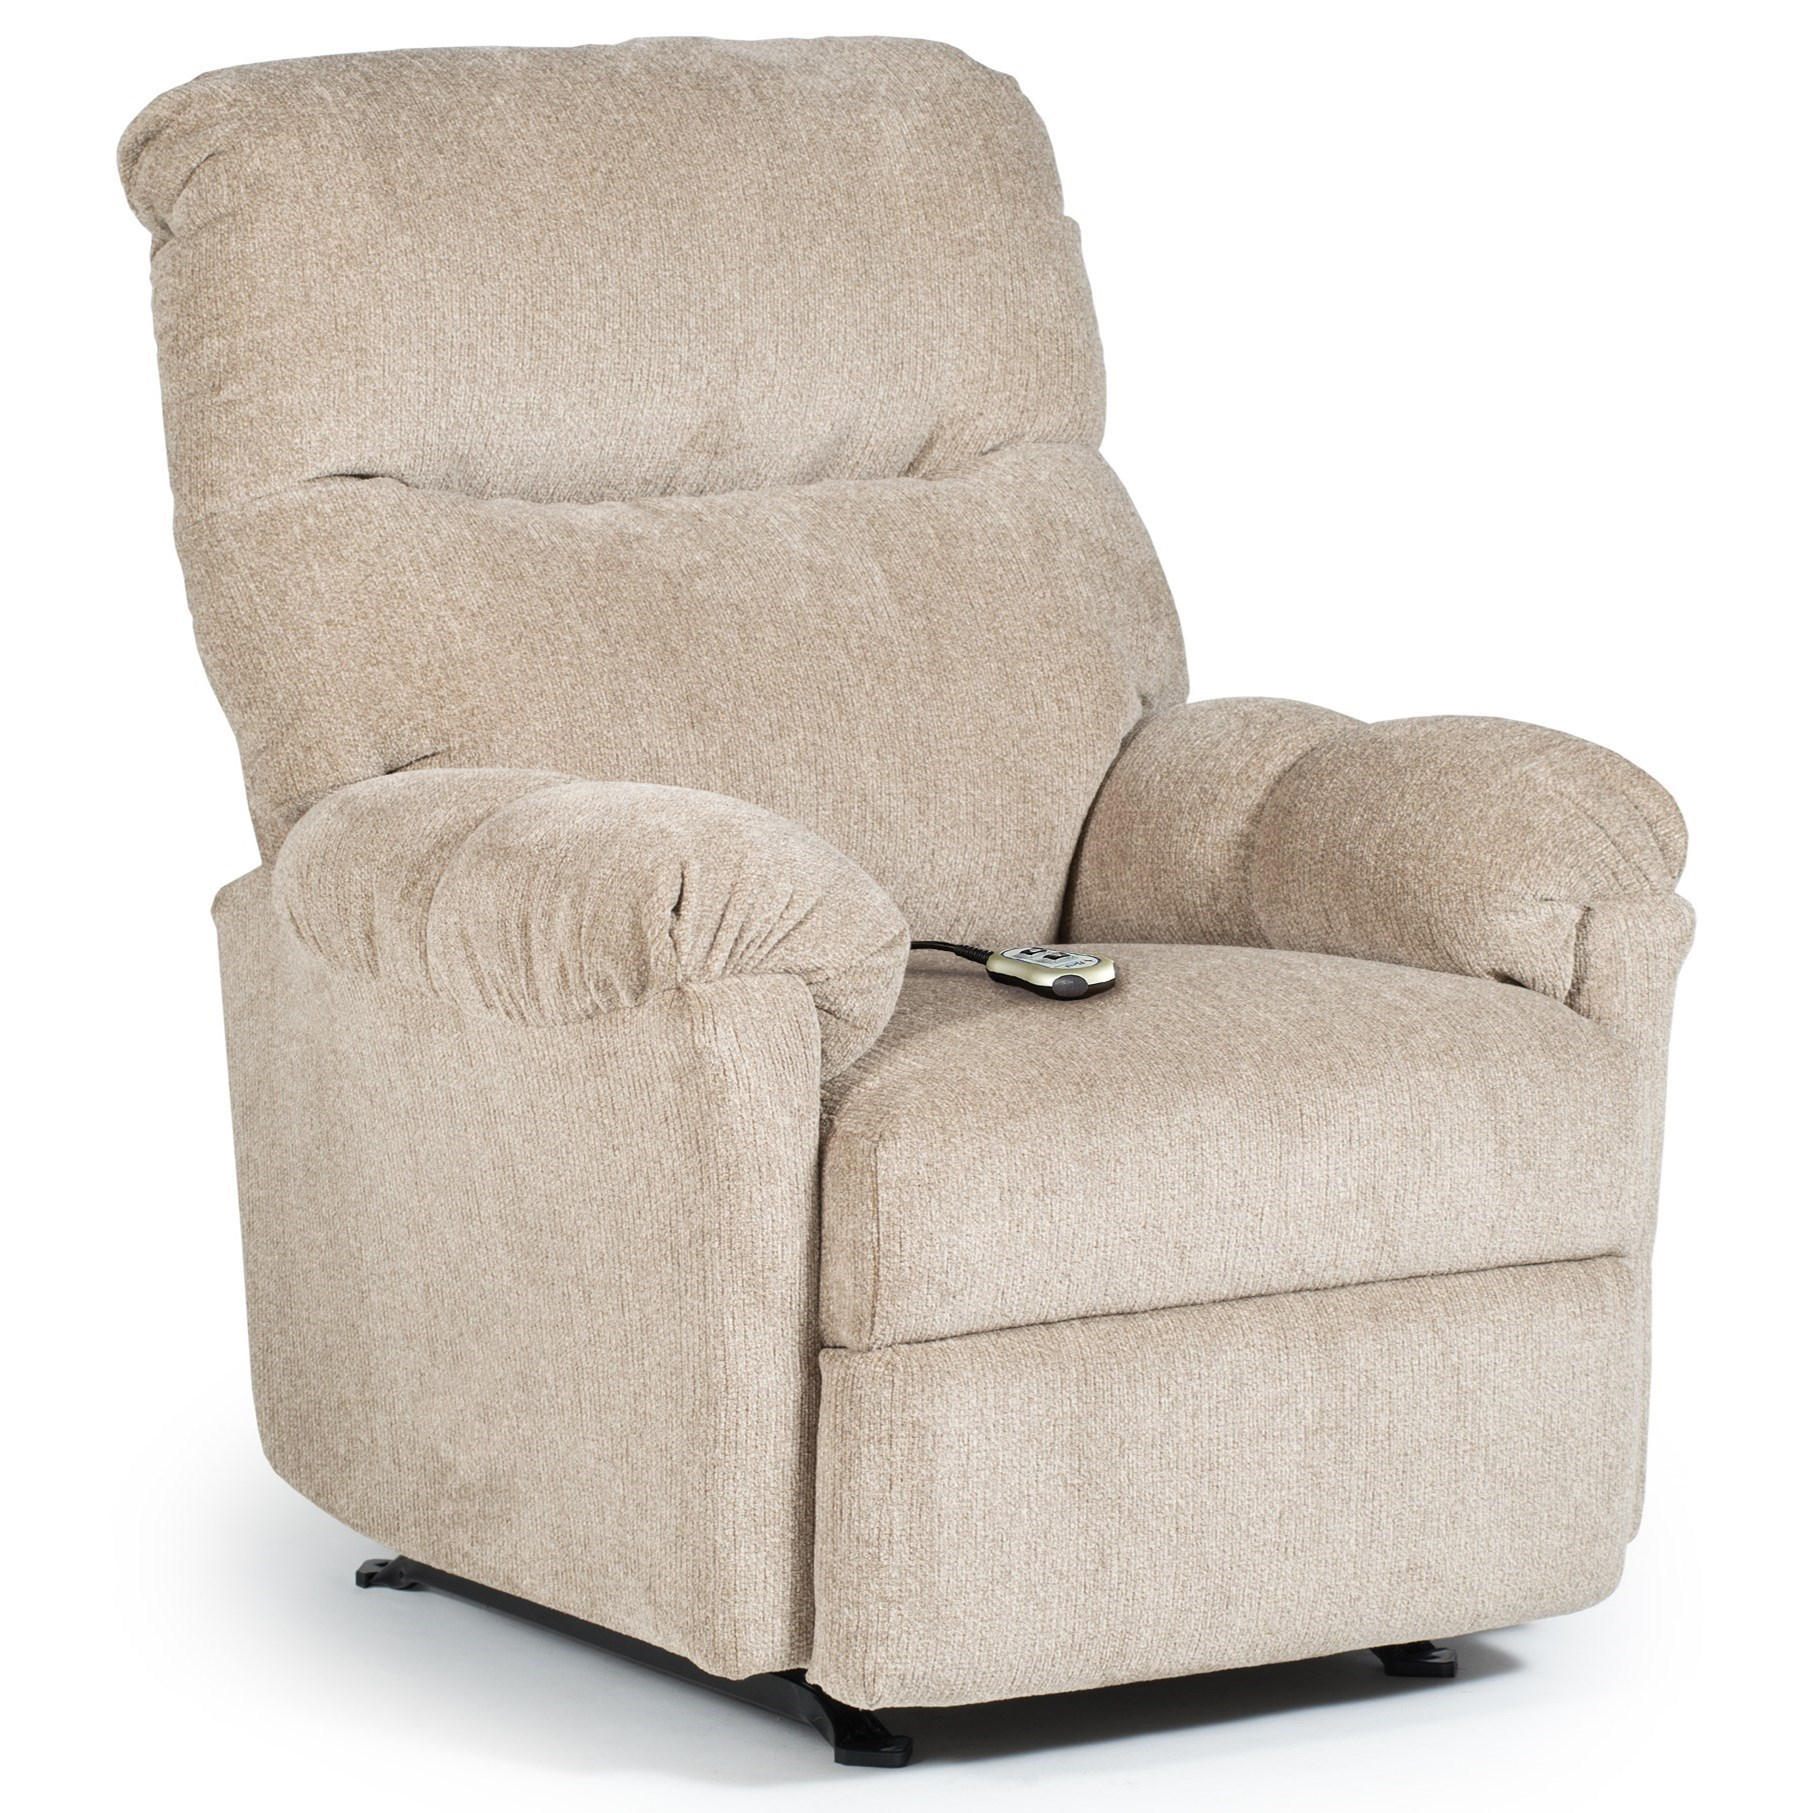 Medium Recliners Balmore Power Wall Hugger Reclining Chair By Best Home  Furnishings